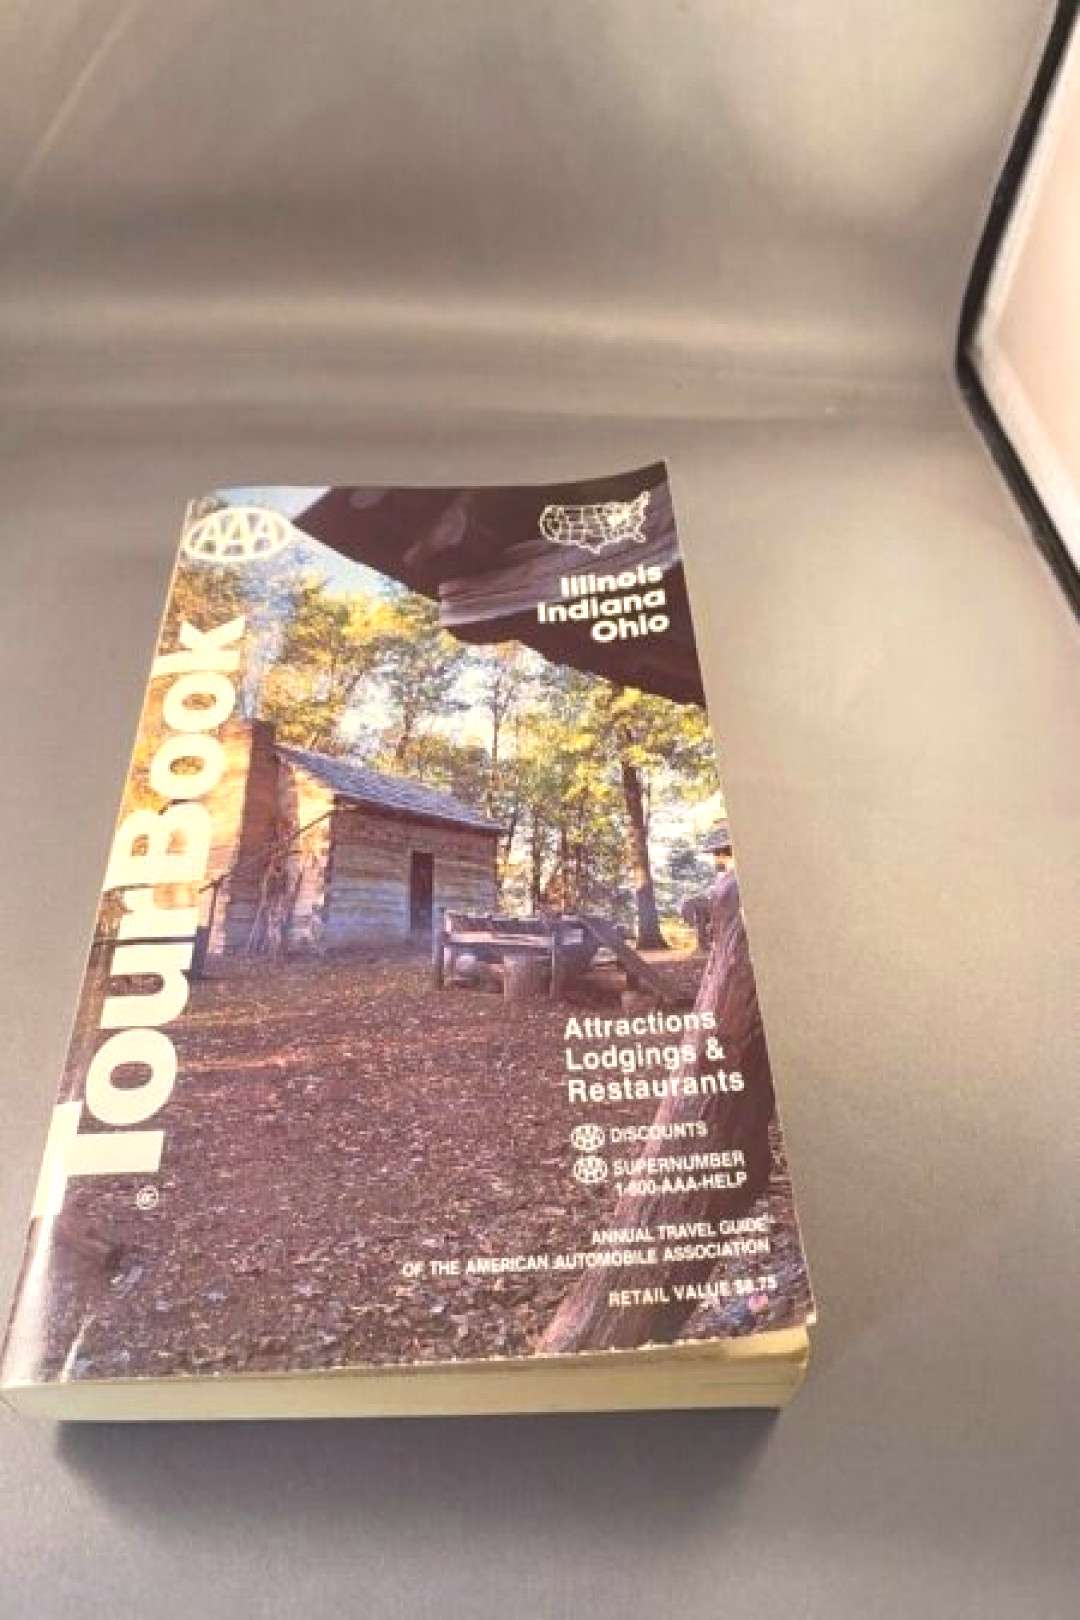 Travel Guide: 1994 AAA Illinois  Indiana Ohio Tour Book Guide Travel Maps Hotels Restaurants 1994 A